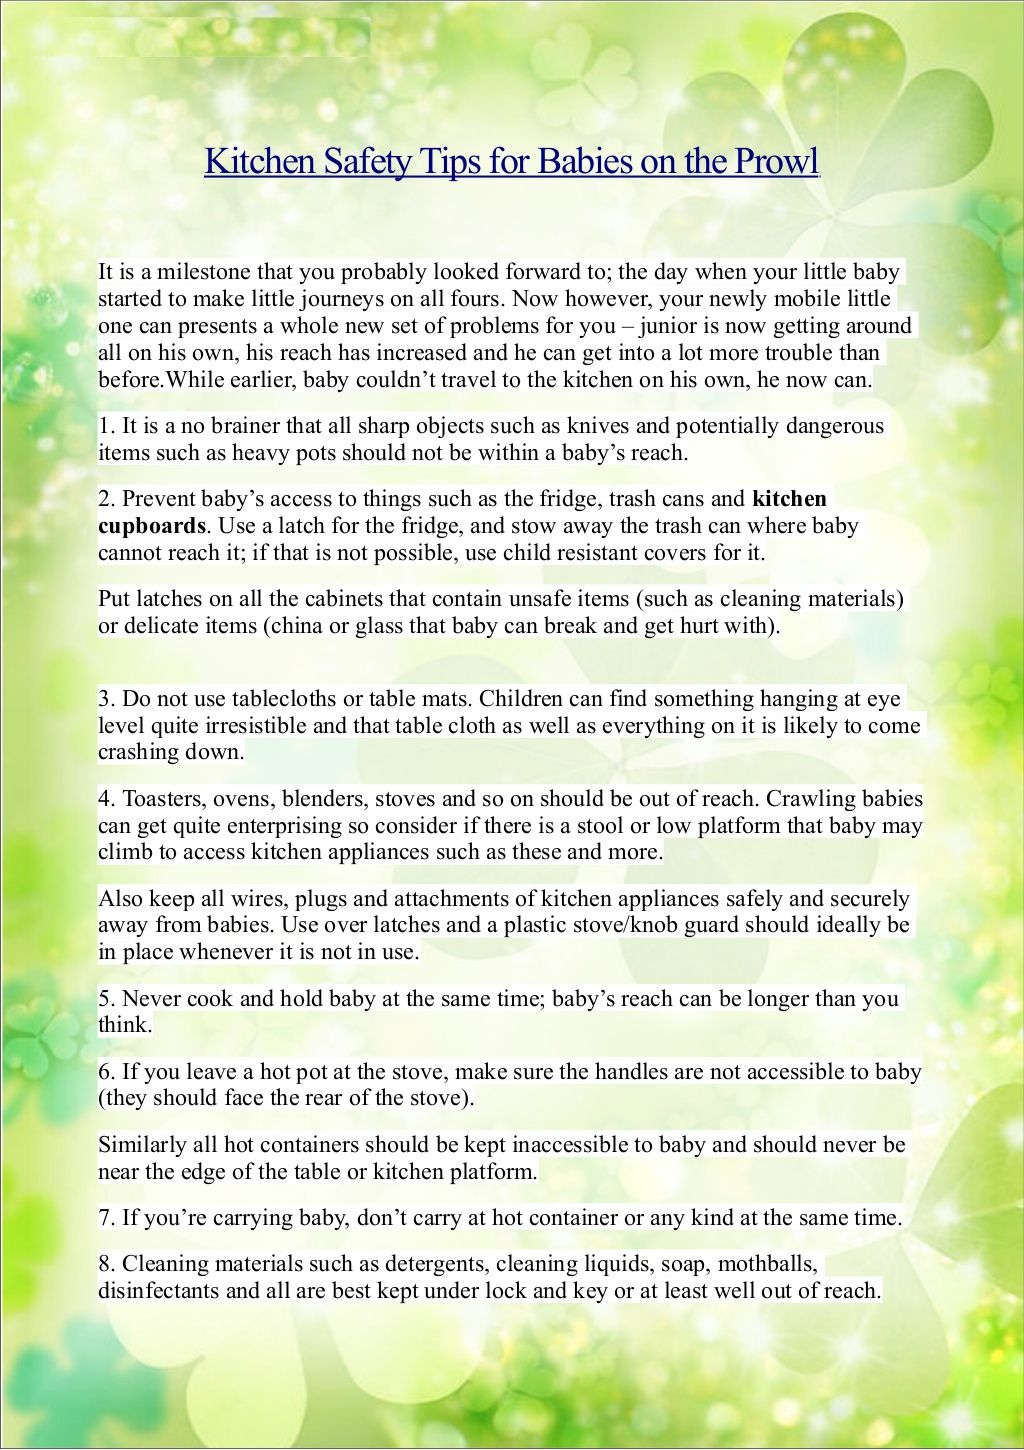 Kitchen Safety Tips for Babies on the Prowl by Guangzhou Prodigy ...